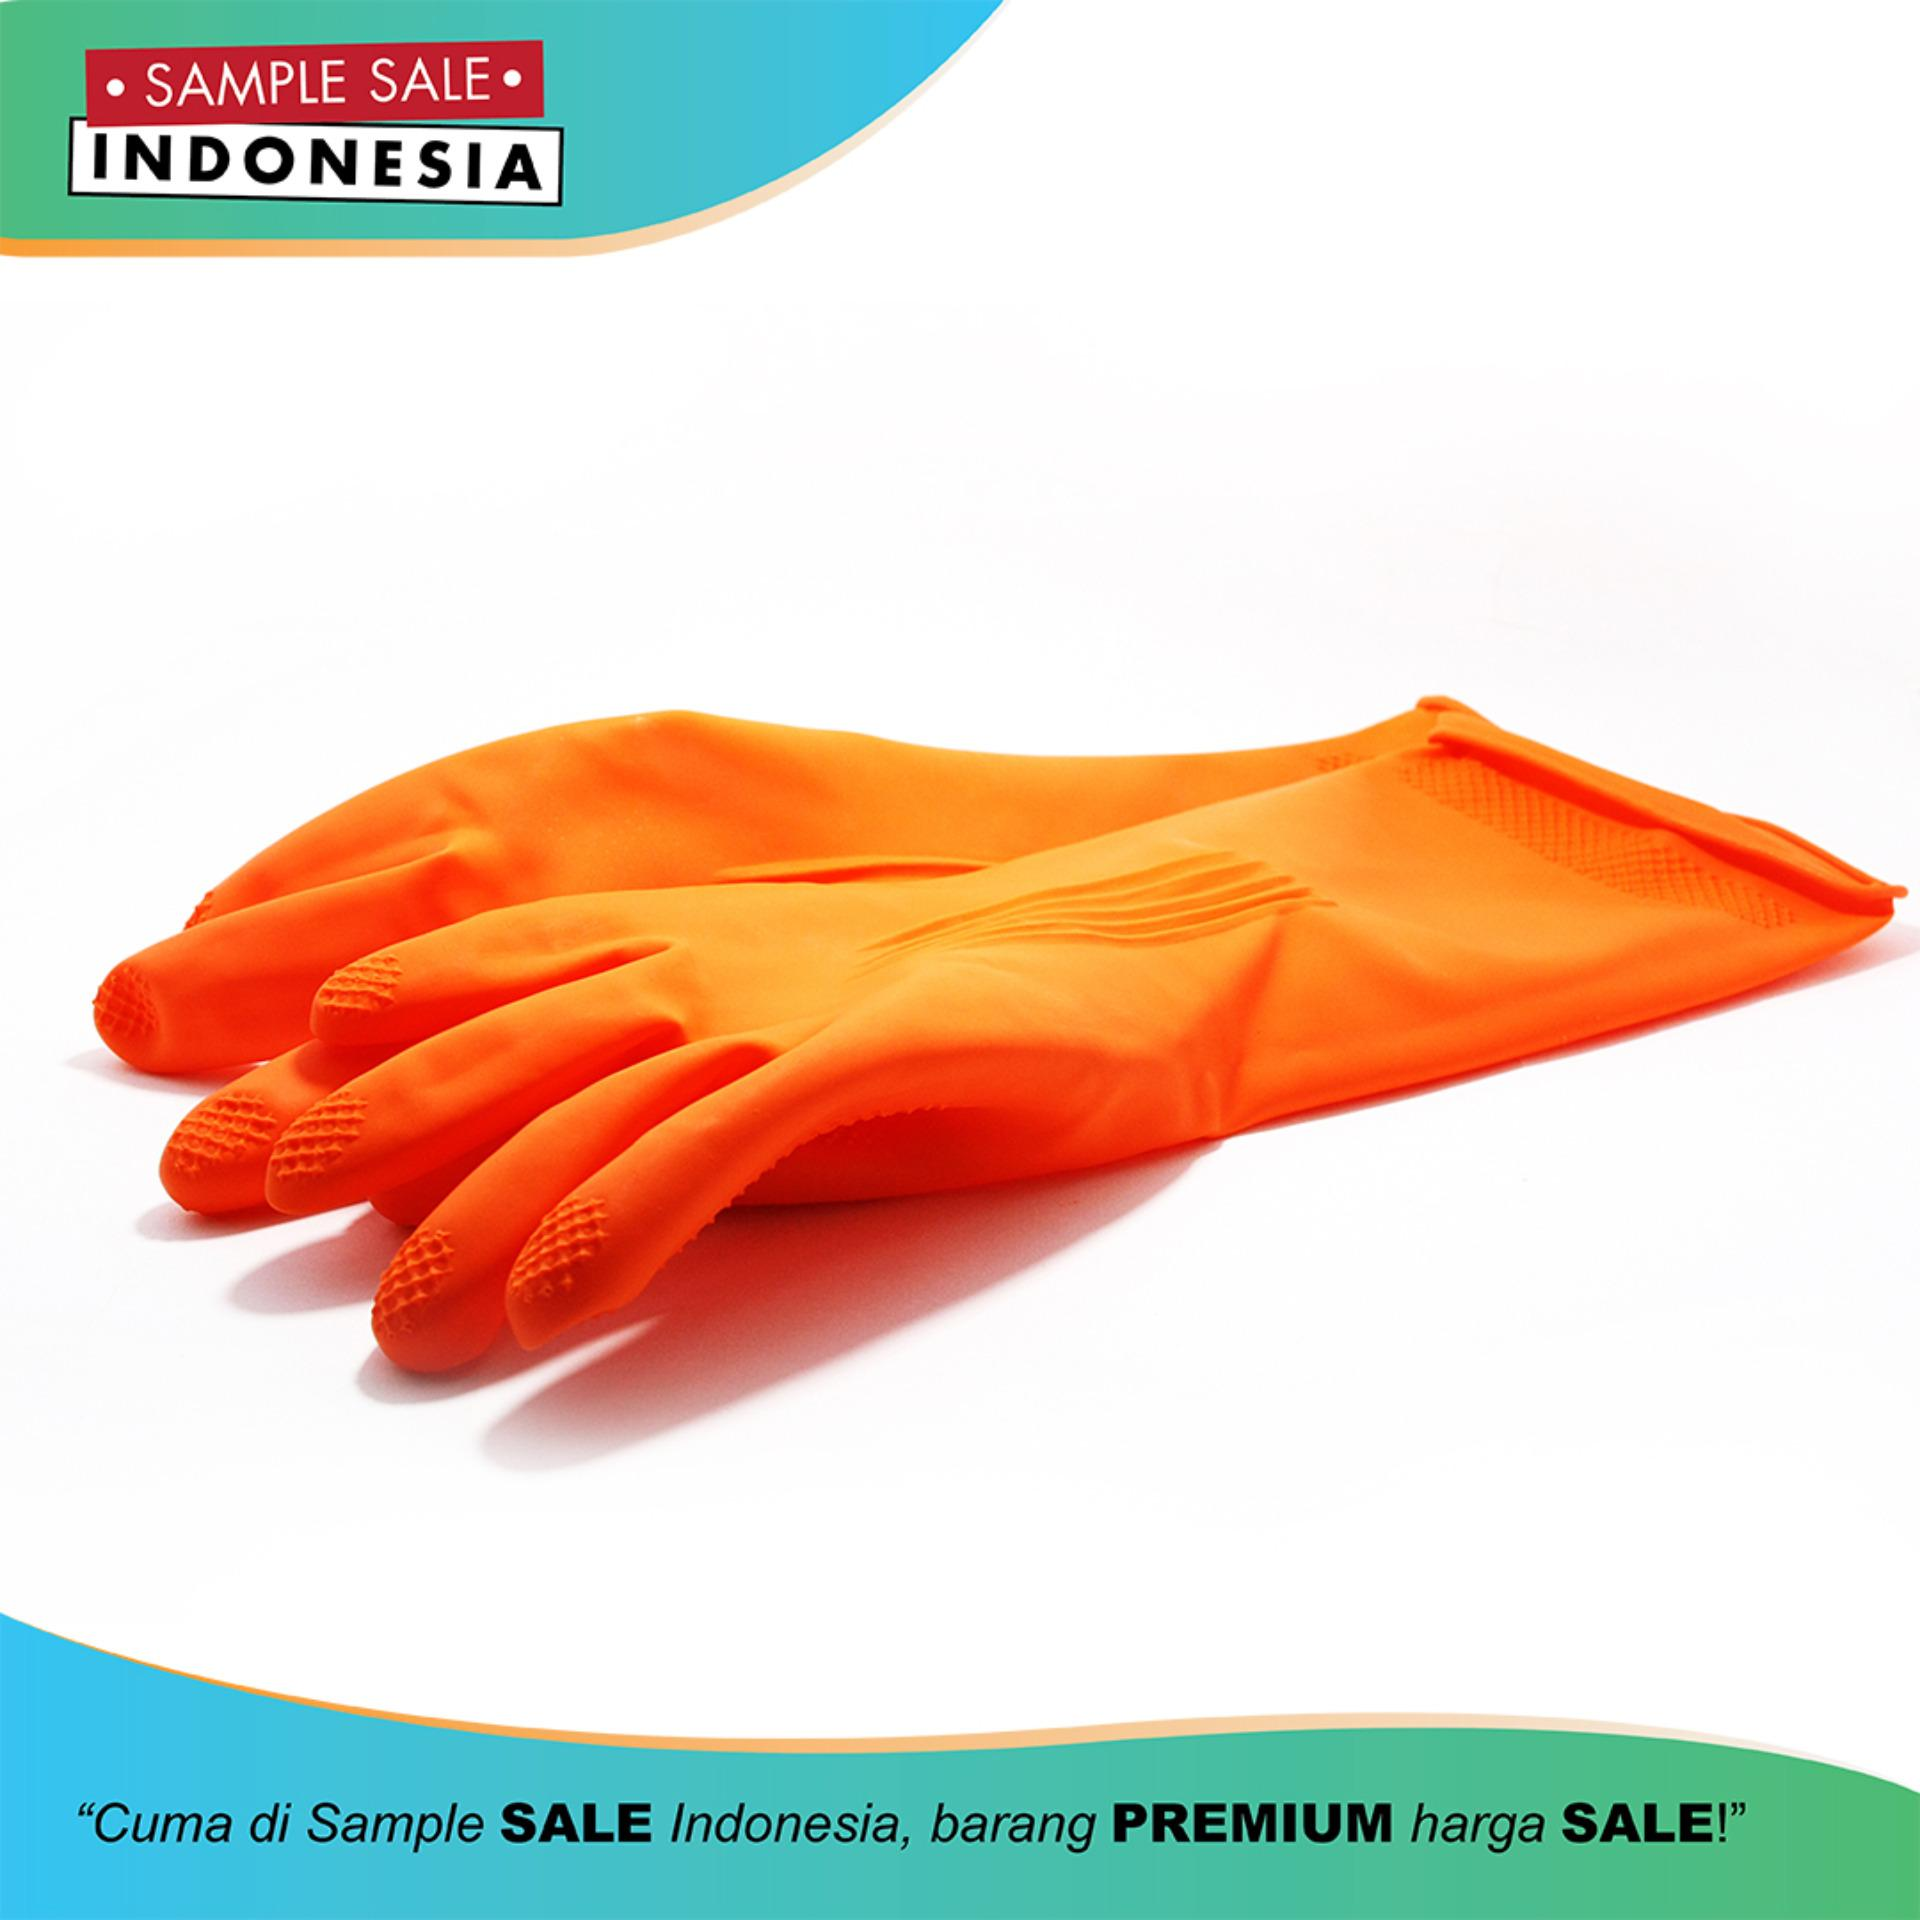 Cheapest Price Sarung Tangan/House Hold Gloves Latex Orange Premium Young Young 7.5 INCH (